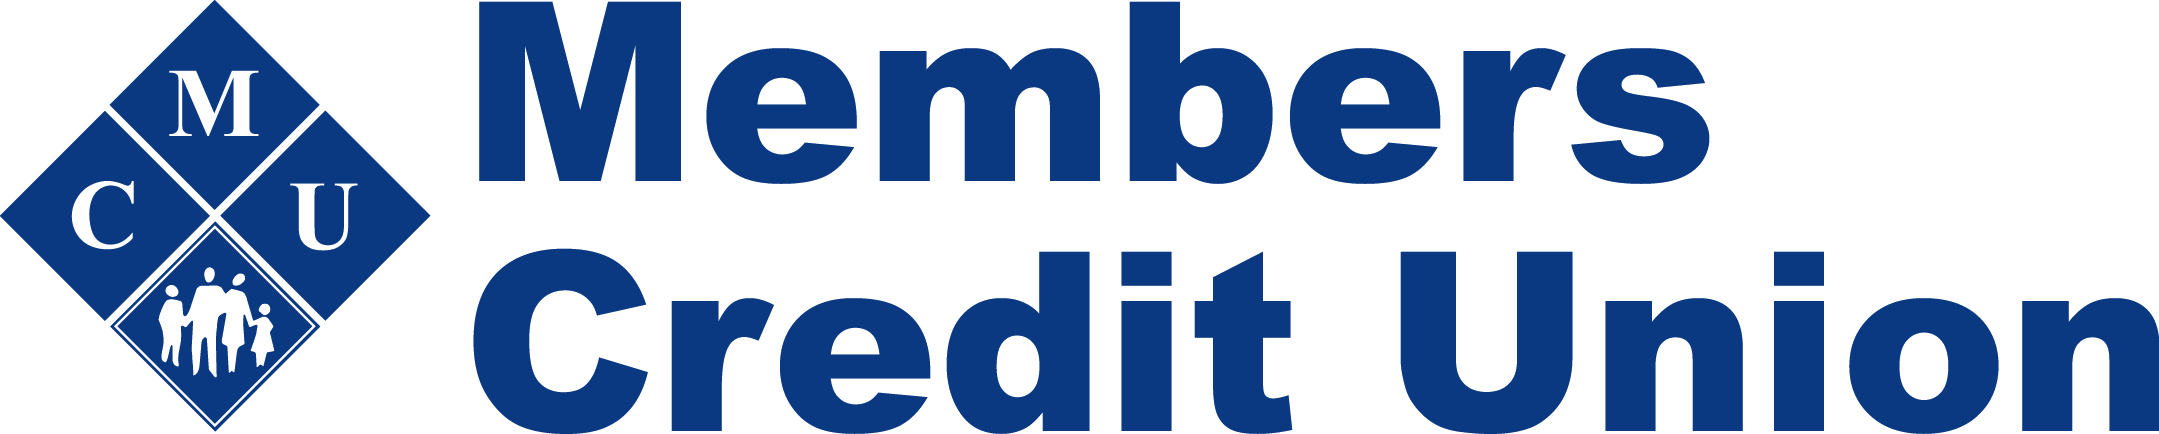 Members Credit Union Logo